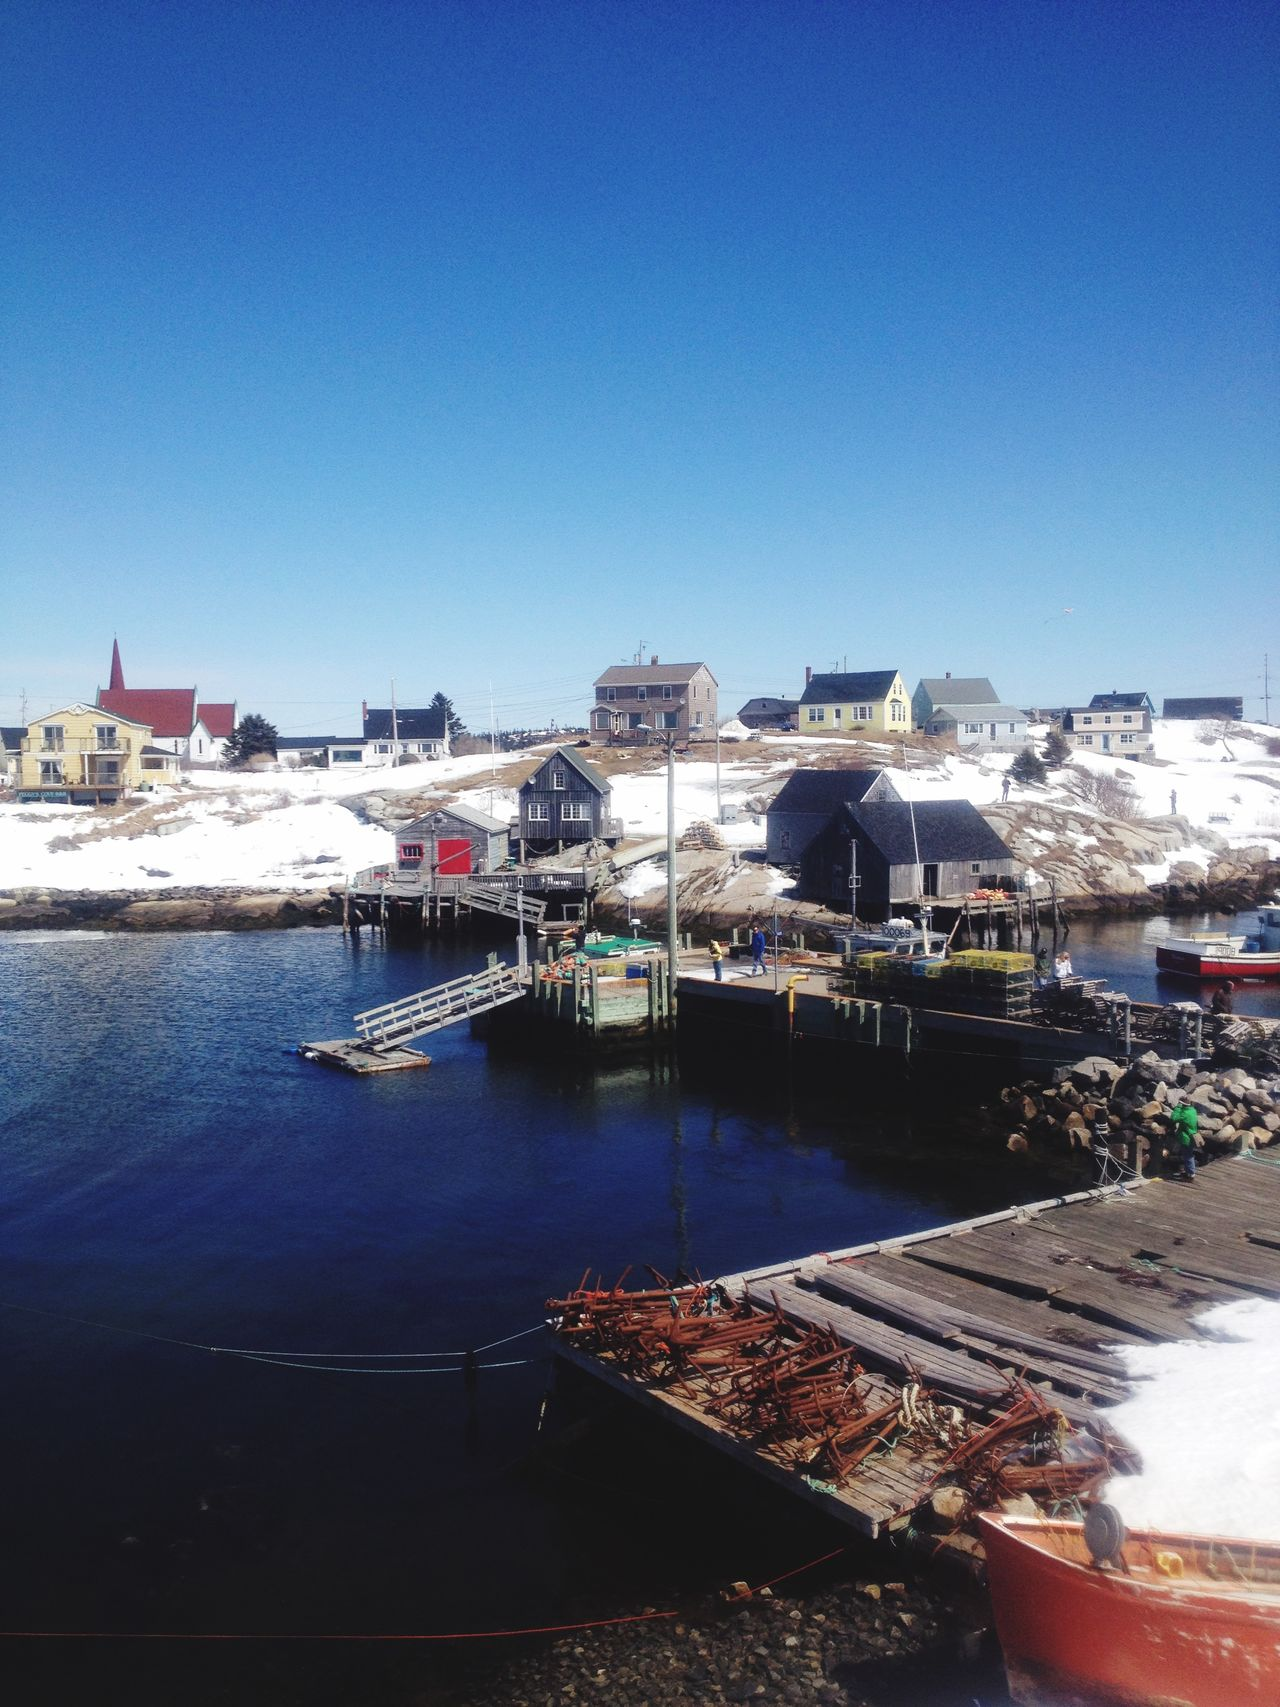 Peggy's cove in winter ❄️ Novascotia Peggyscove Peggysage Wintertime